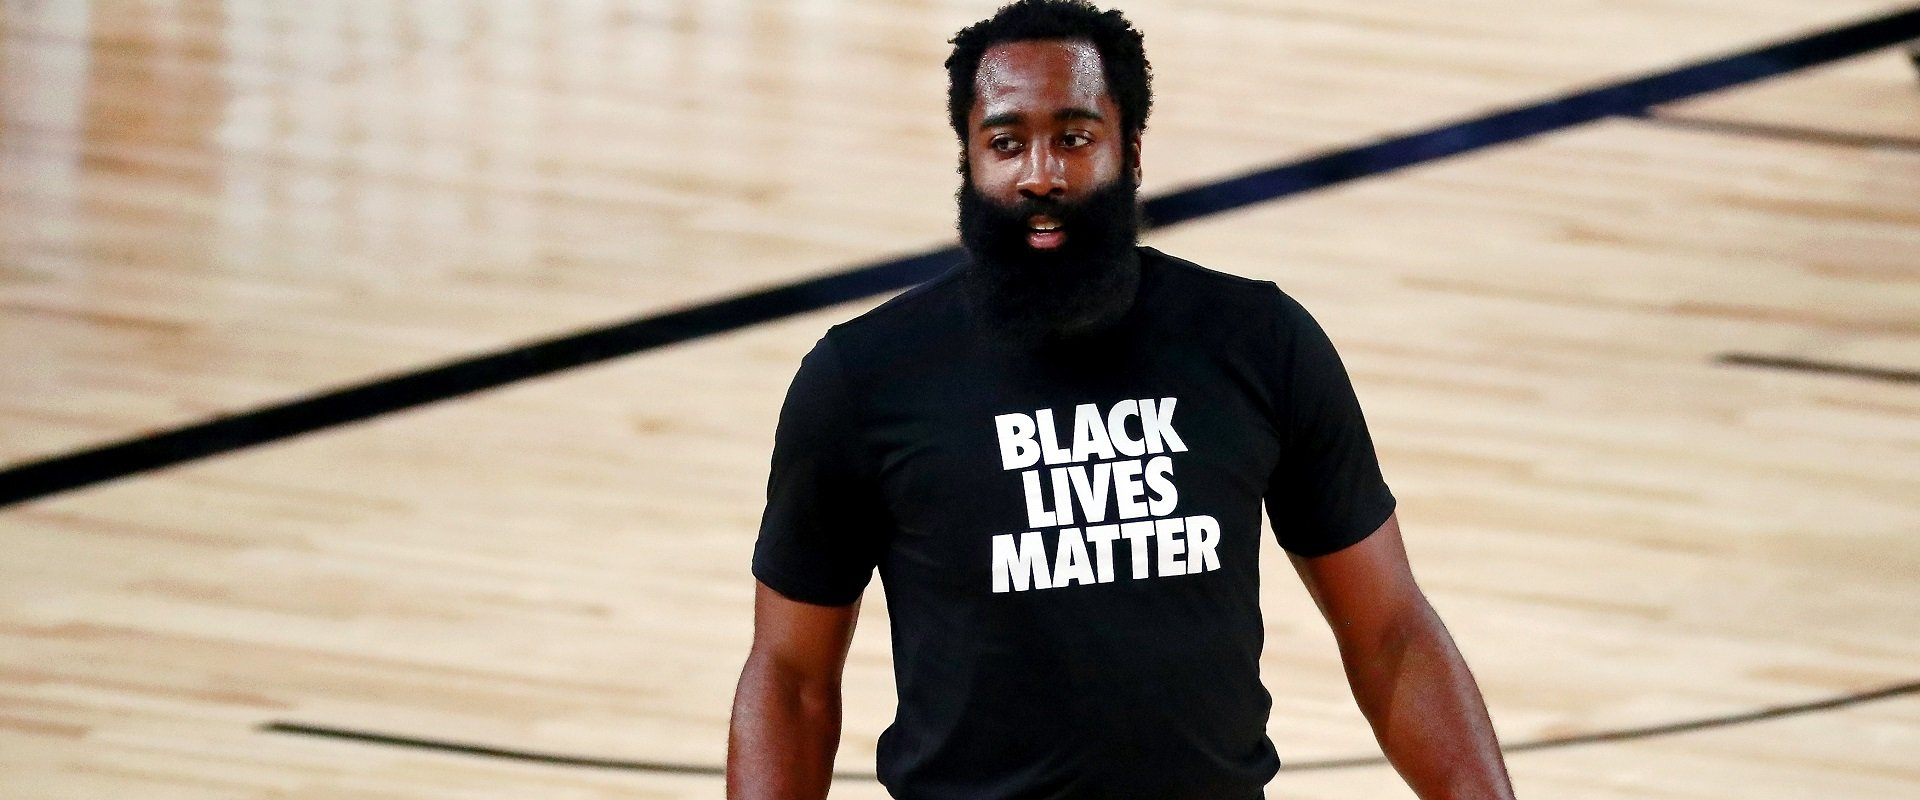 JAMES HARDEN IMPACTA QUADRA E REDES SOCIAIS DO BROOKLYN NETS